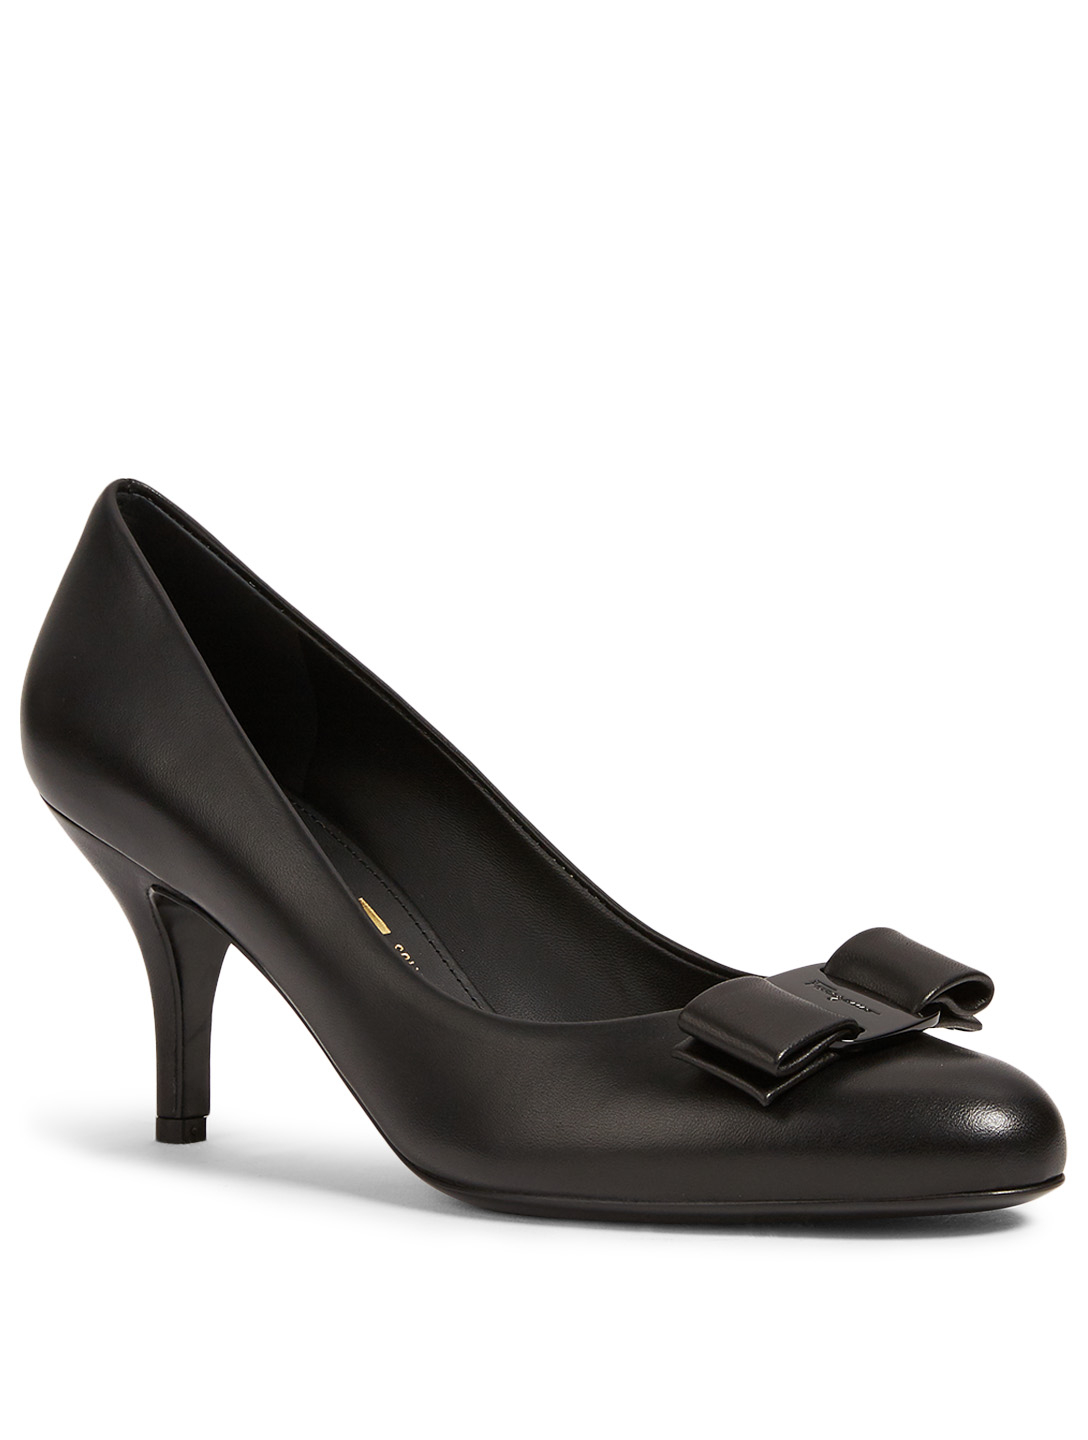 SALVATORE FERRAGAMO Carla 70 Leather Pumps Women's Black